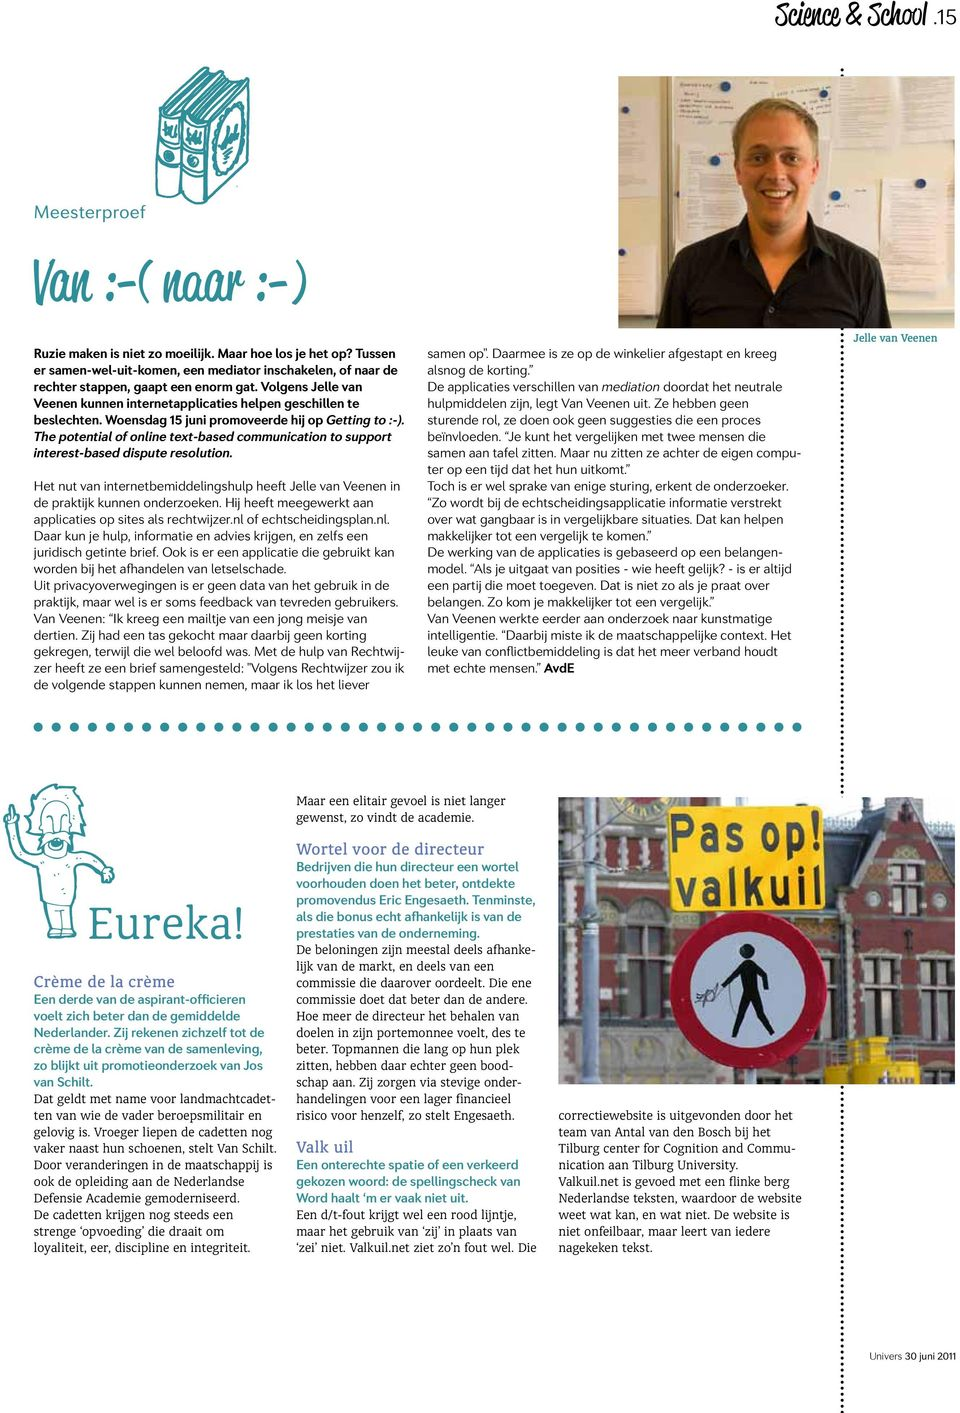 Woensdag 15 juni promoveerde hij op Getting to :-). The potential of online text-based communication to support interest-based dispute resolution.